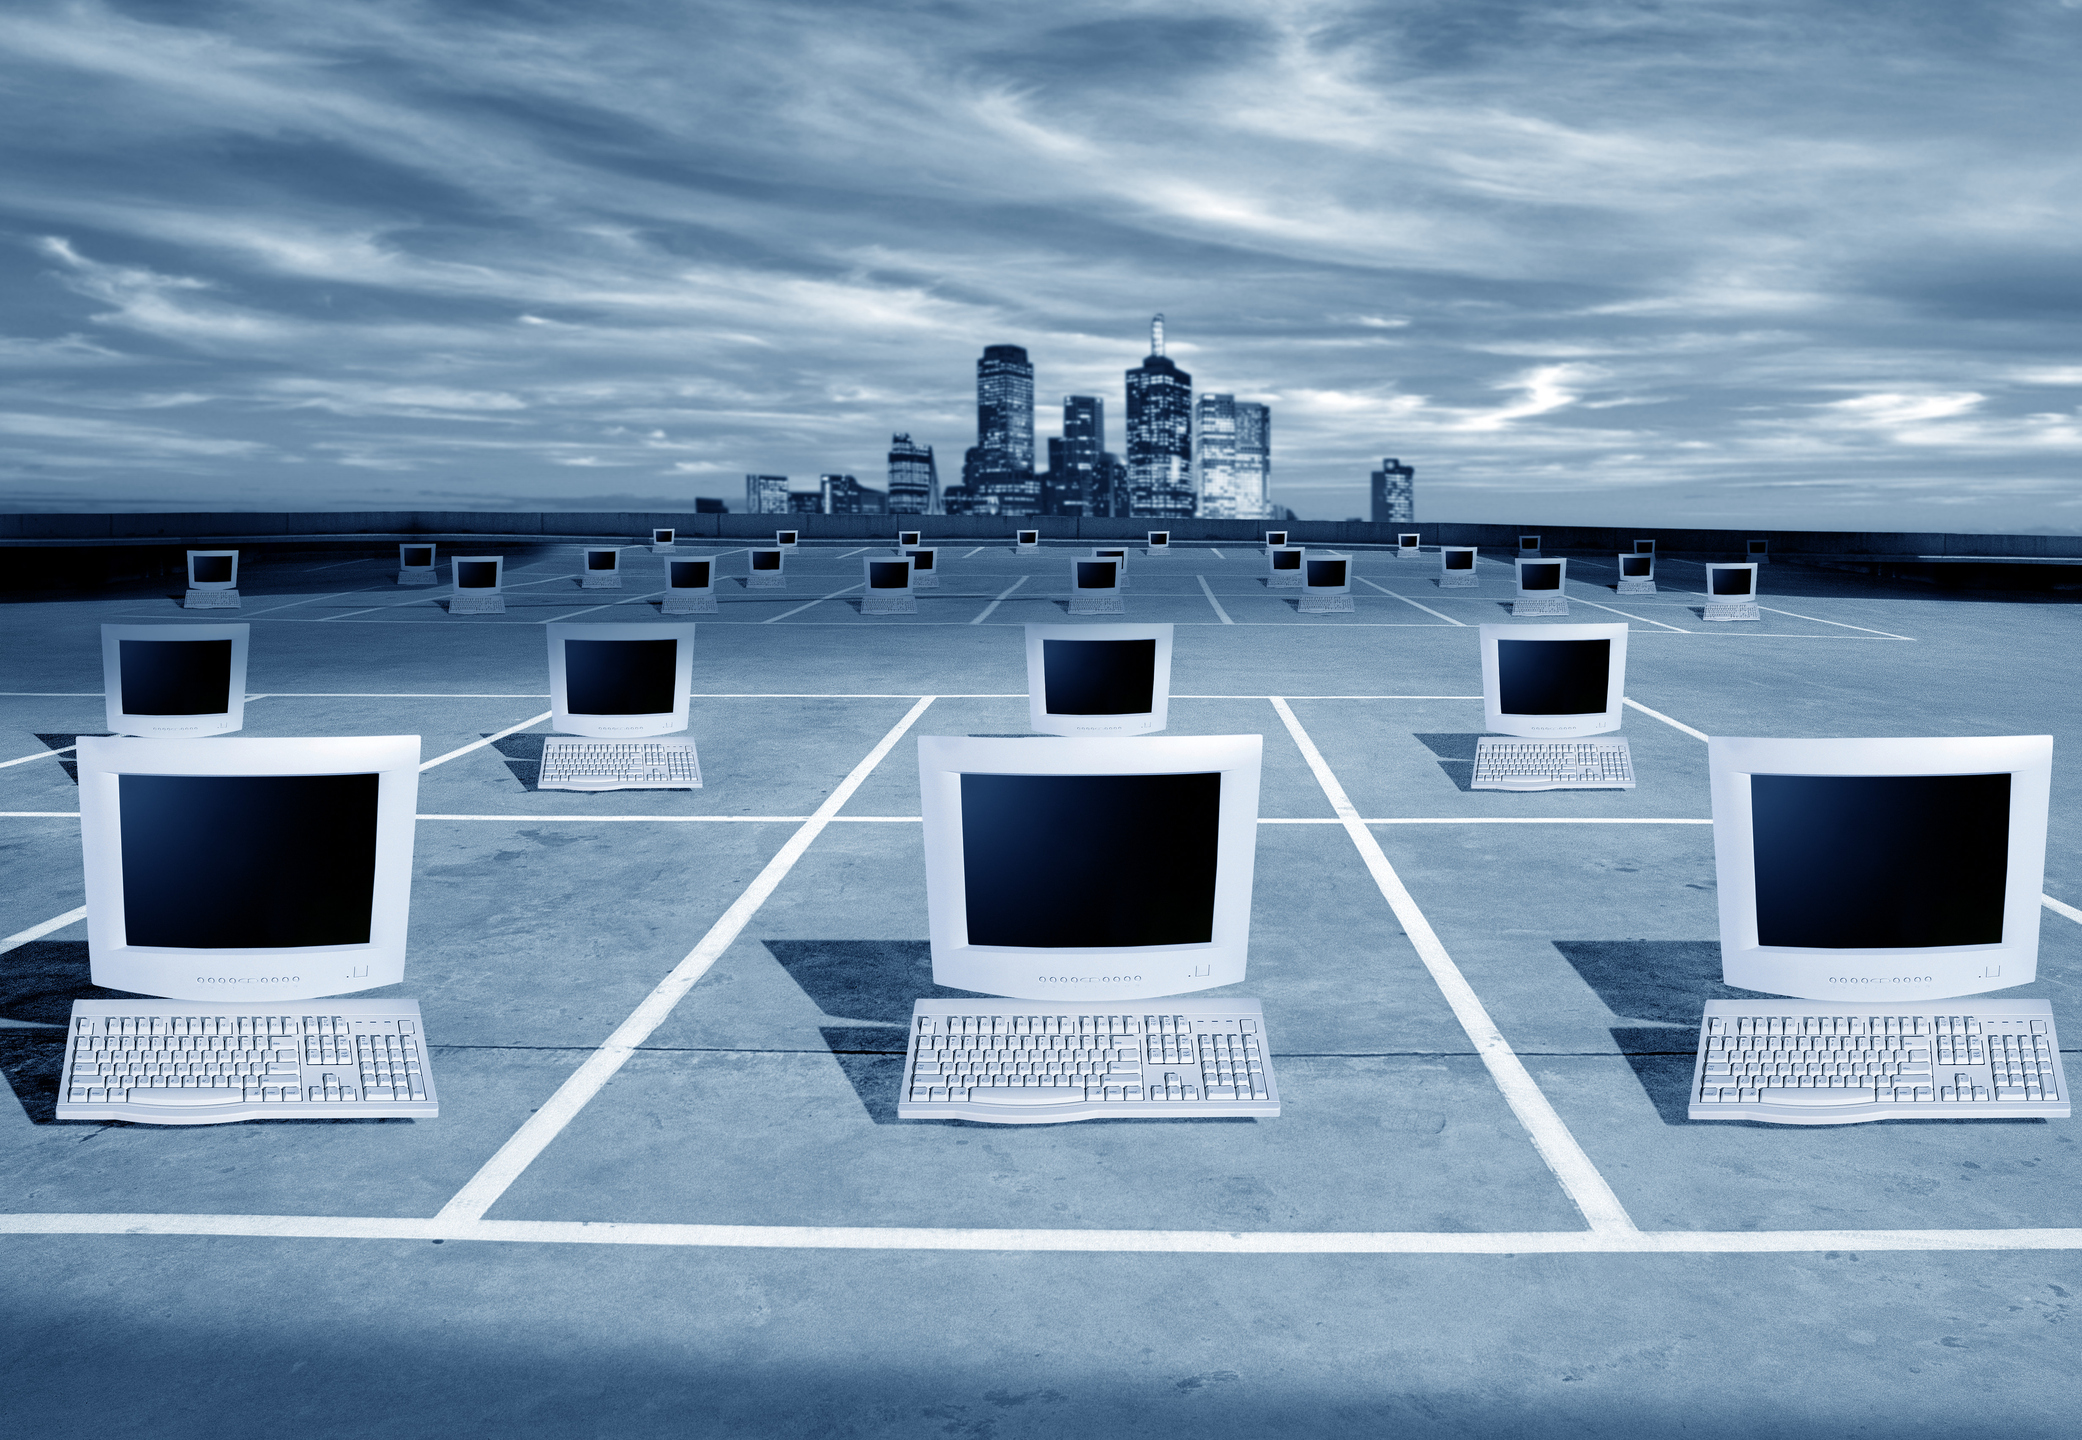 Computers on the network in front of the city skyline.